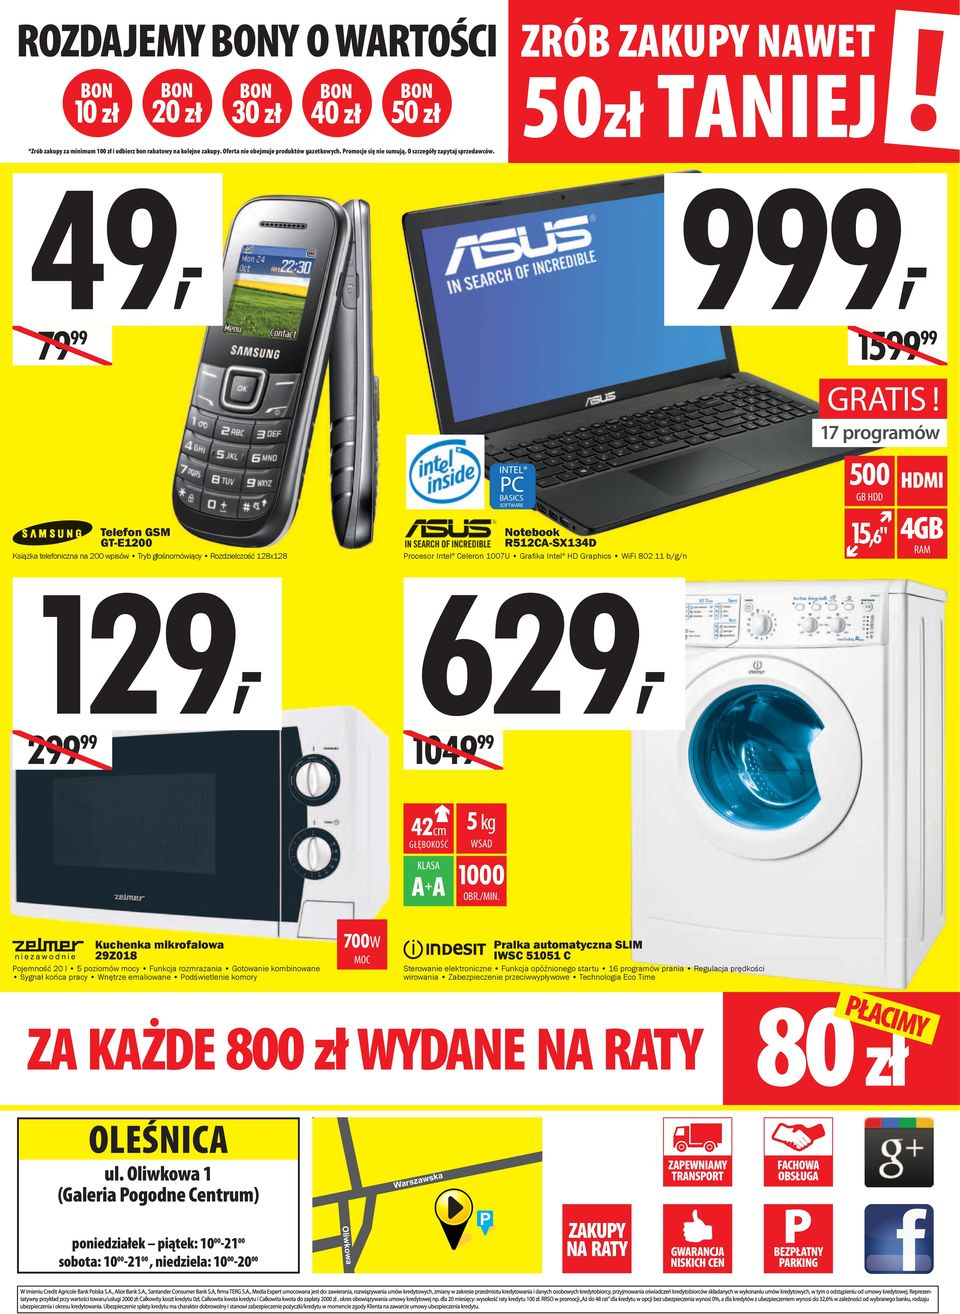 9, 15 Telefon GSM GT-E1200 Książka telefoniczna na 200 wpisów Tryb głośnomówiący Rozdzielczość 128x128 129, 2 INTEL PC BASICS SOFTWARE Notebook R512CA-SX134D Procesor Intel Celeron 1007U Grafi ka